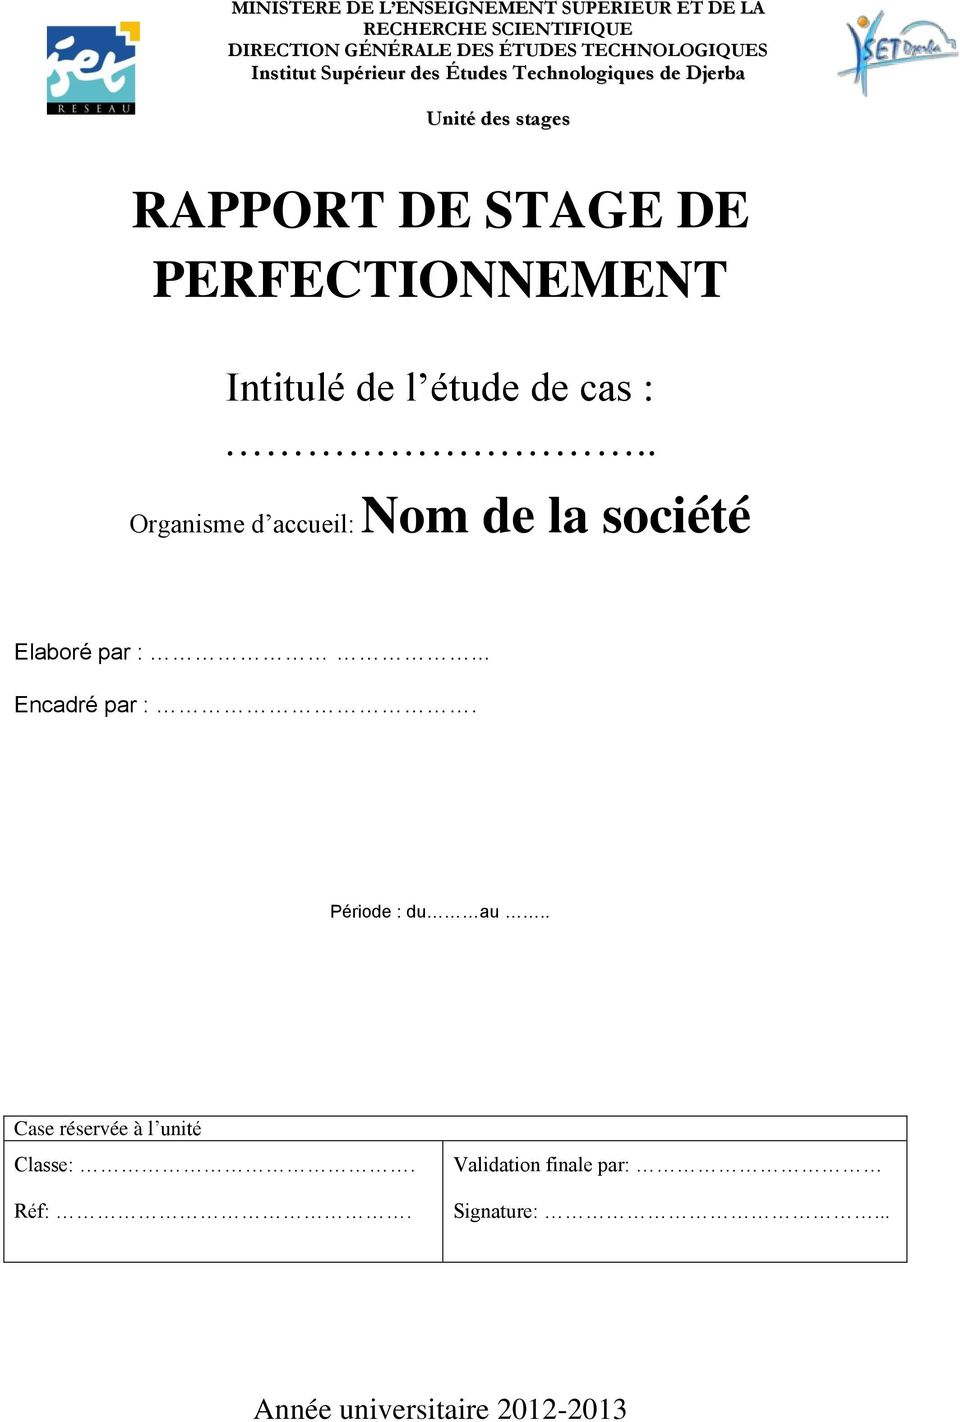 mod u00e8le du rapport  stage perfectionnement